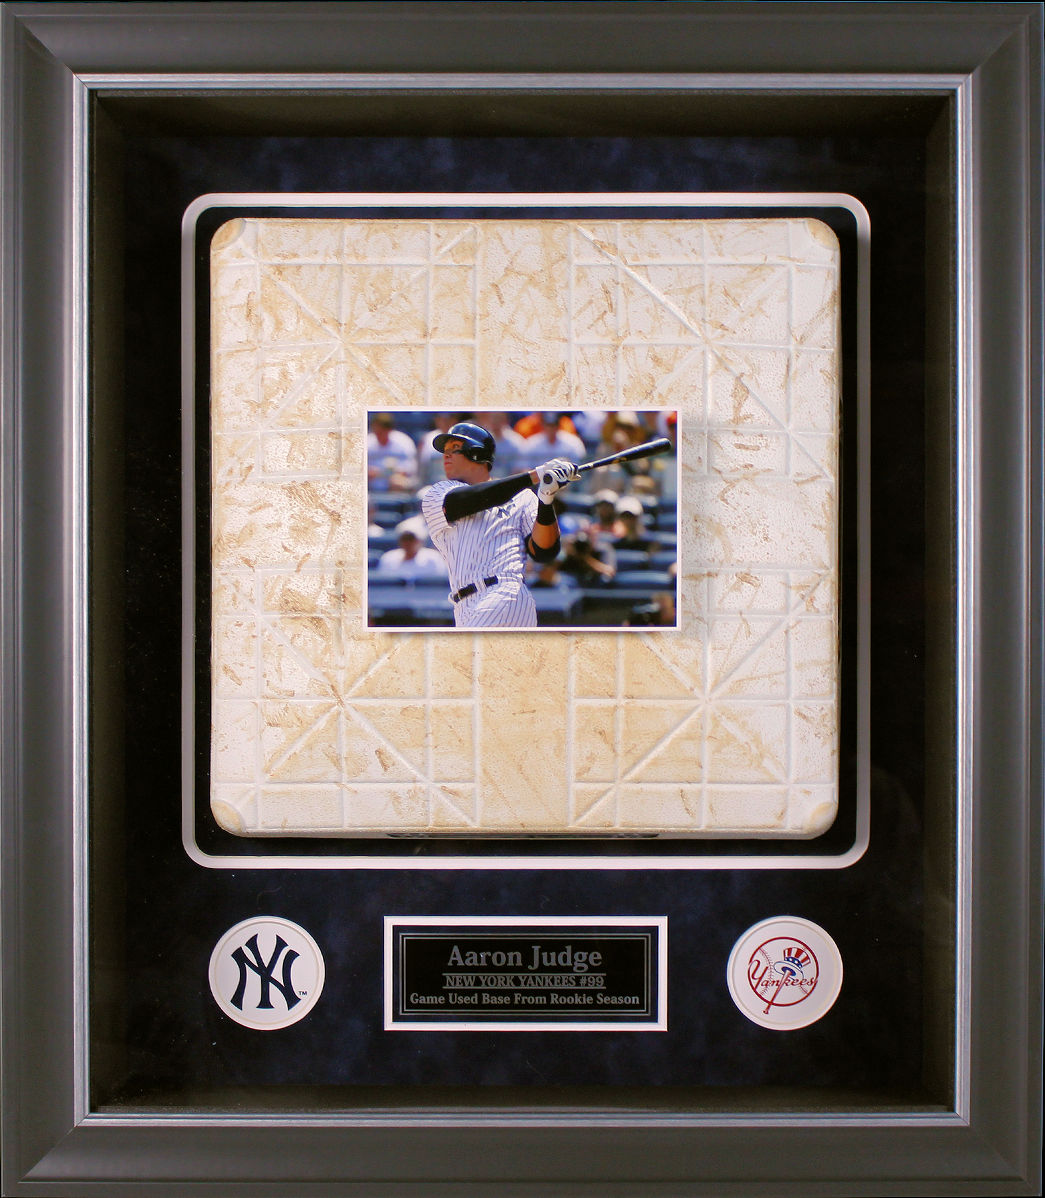 Aaron Judge Framed Rookie Season Collage w/ 2017 Yankee Game Used Base